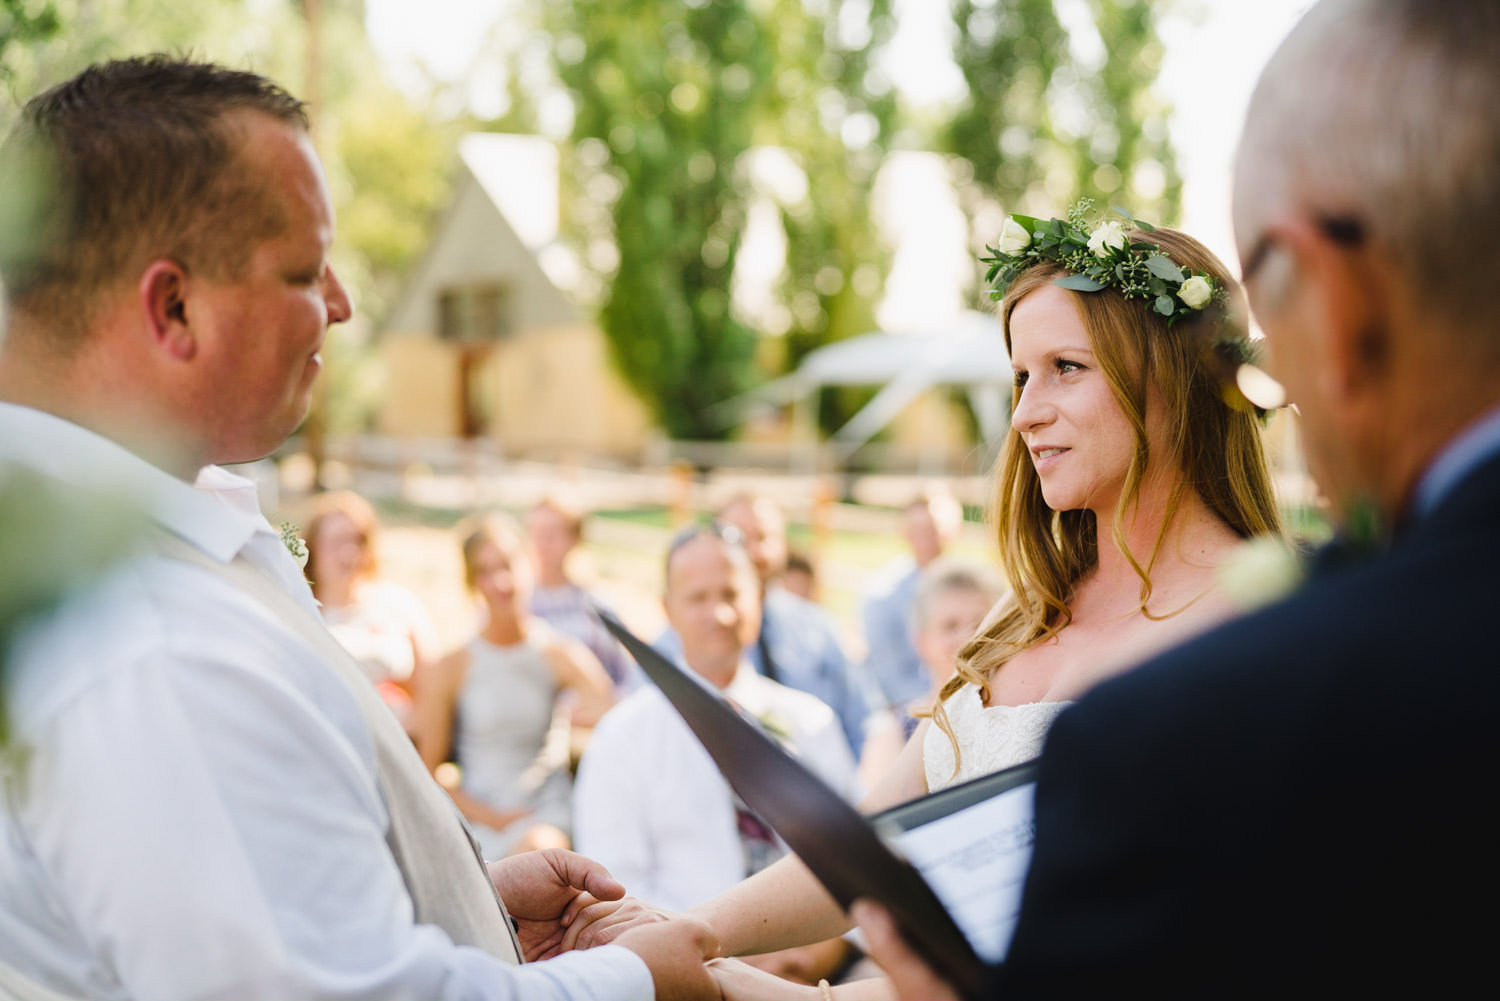 Spring Farm wedding intimate look during ceremony photo